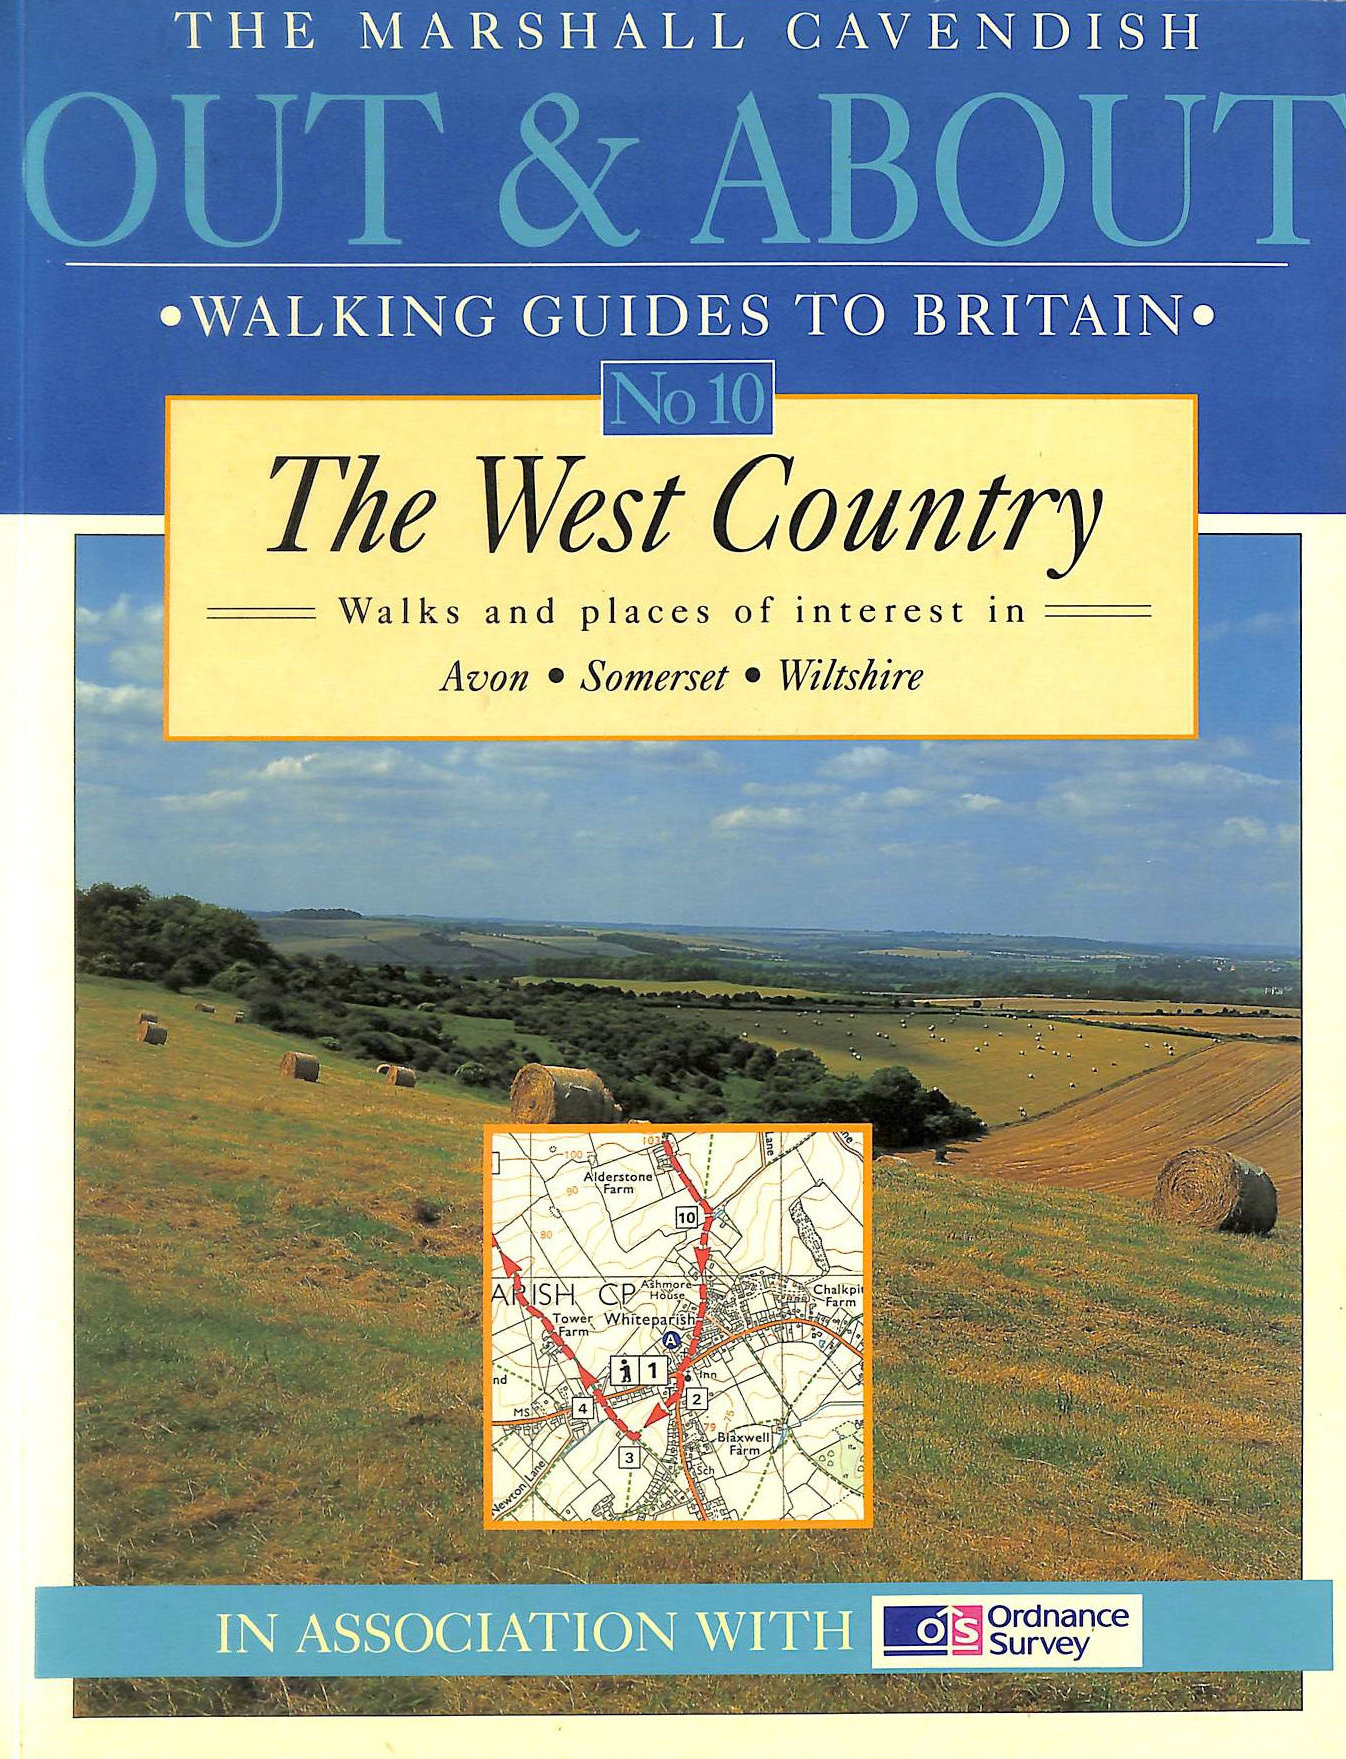 Image for The West Country: Walks and places of interest in Avon / Somerset / Wiltshire (Out and About Walking Guides to Britain)